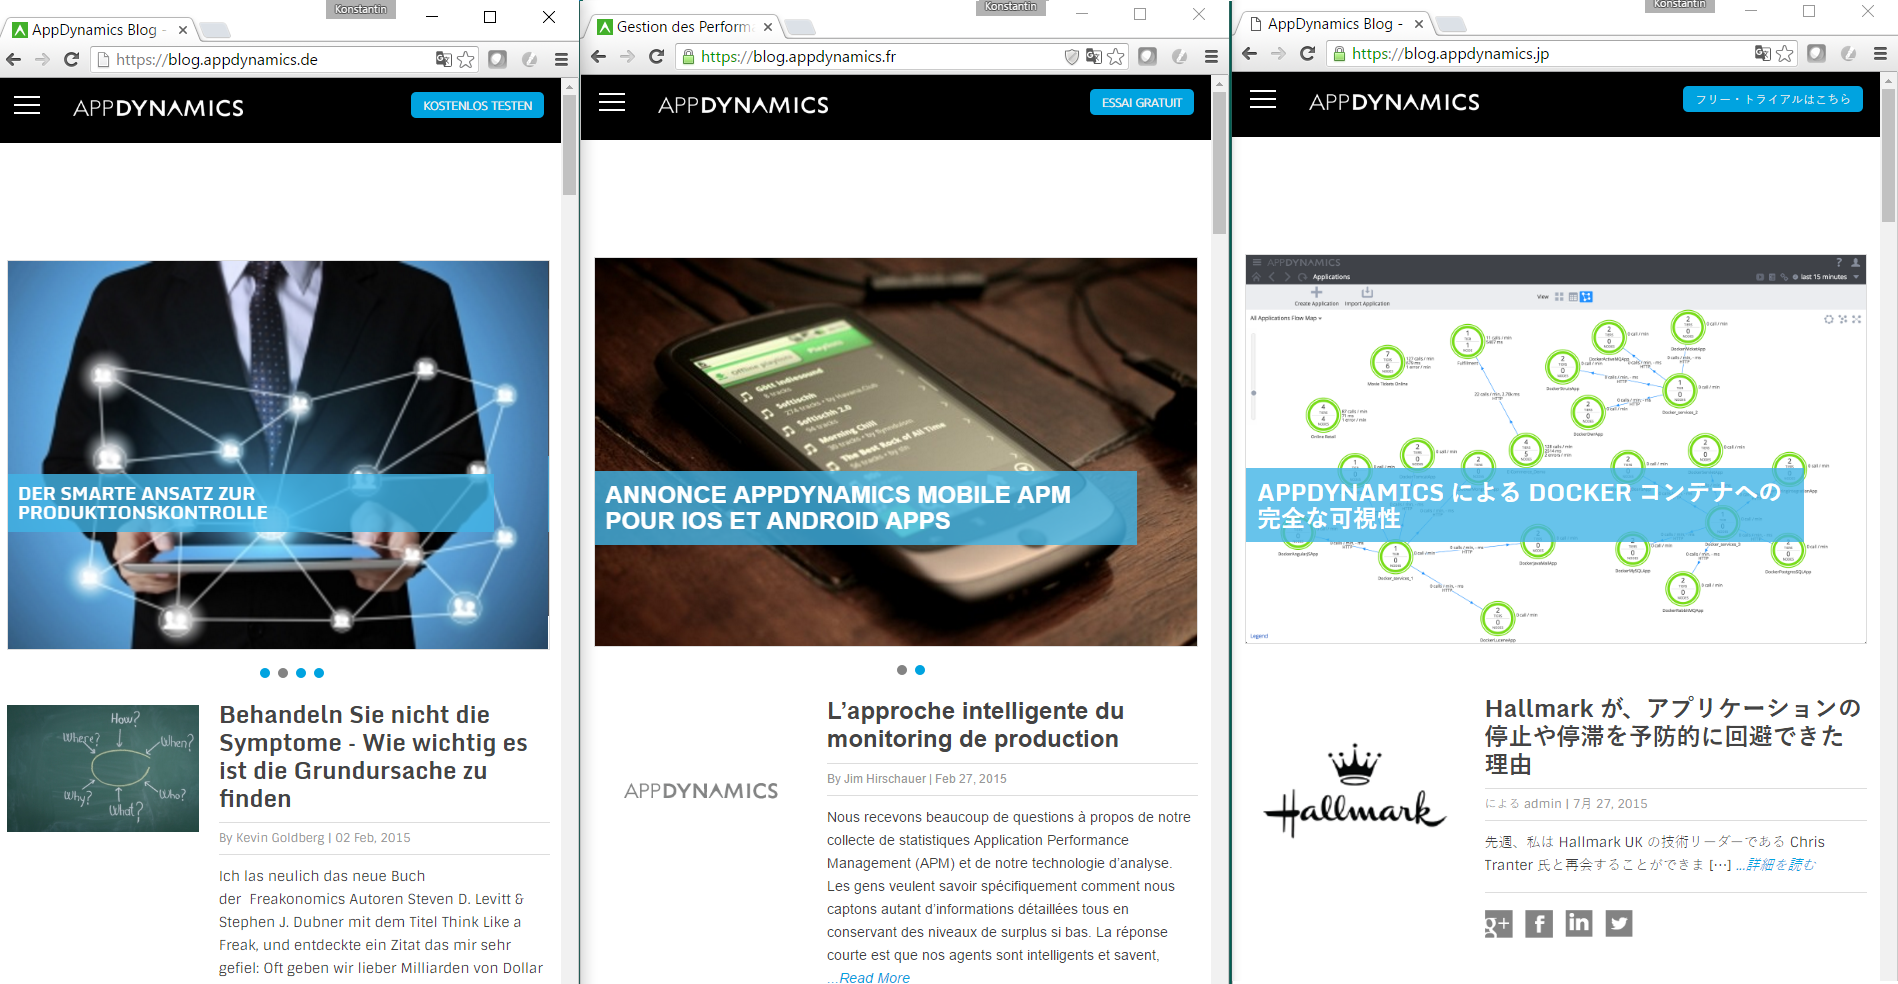 Appdynamics blogs in French, German and Japanese show different content